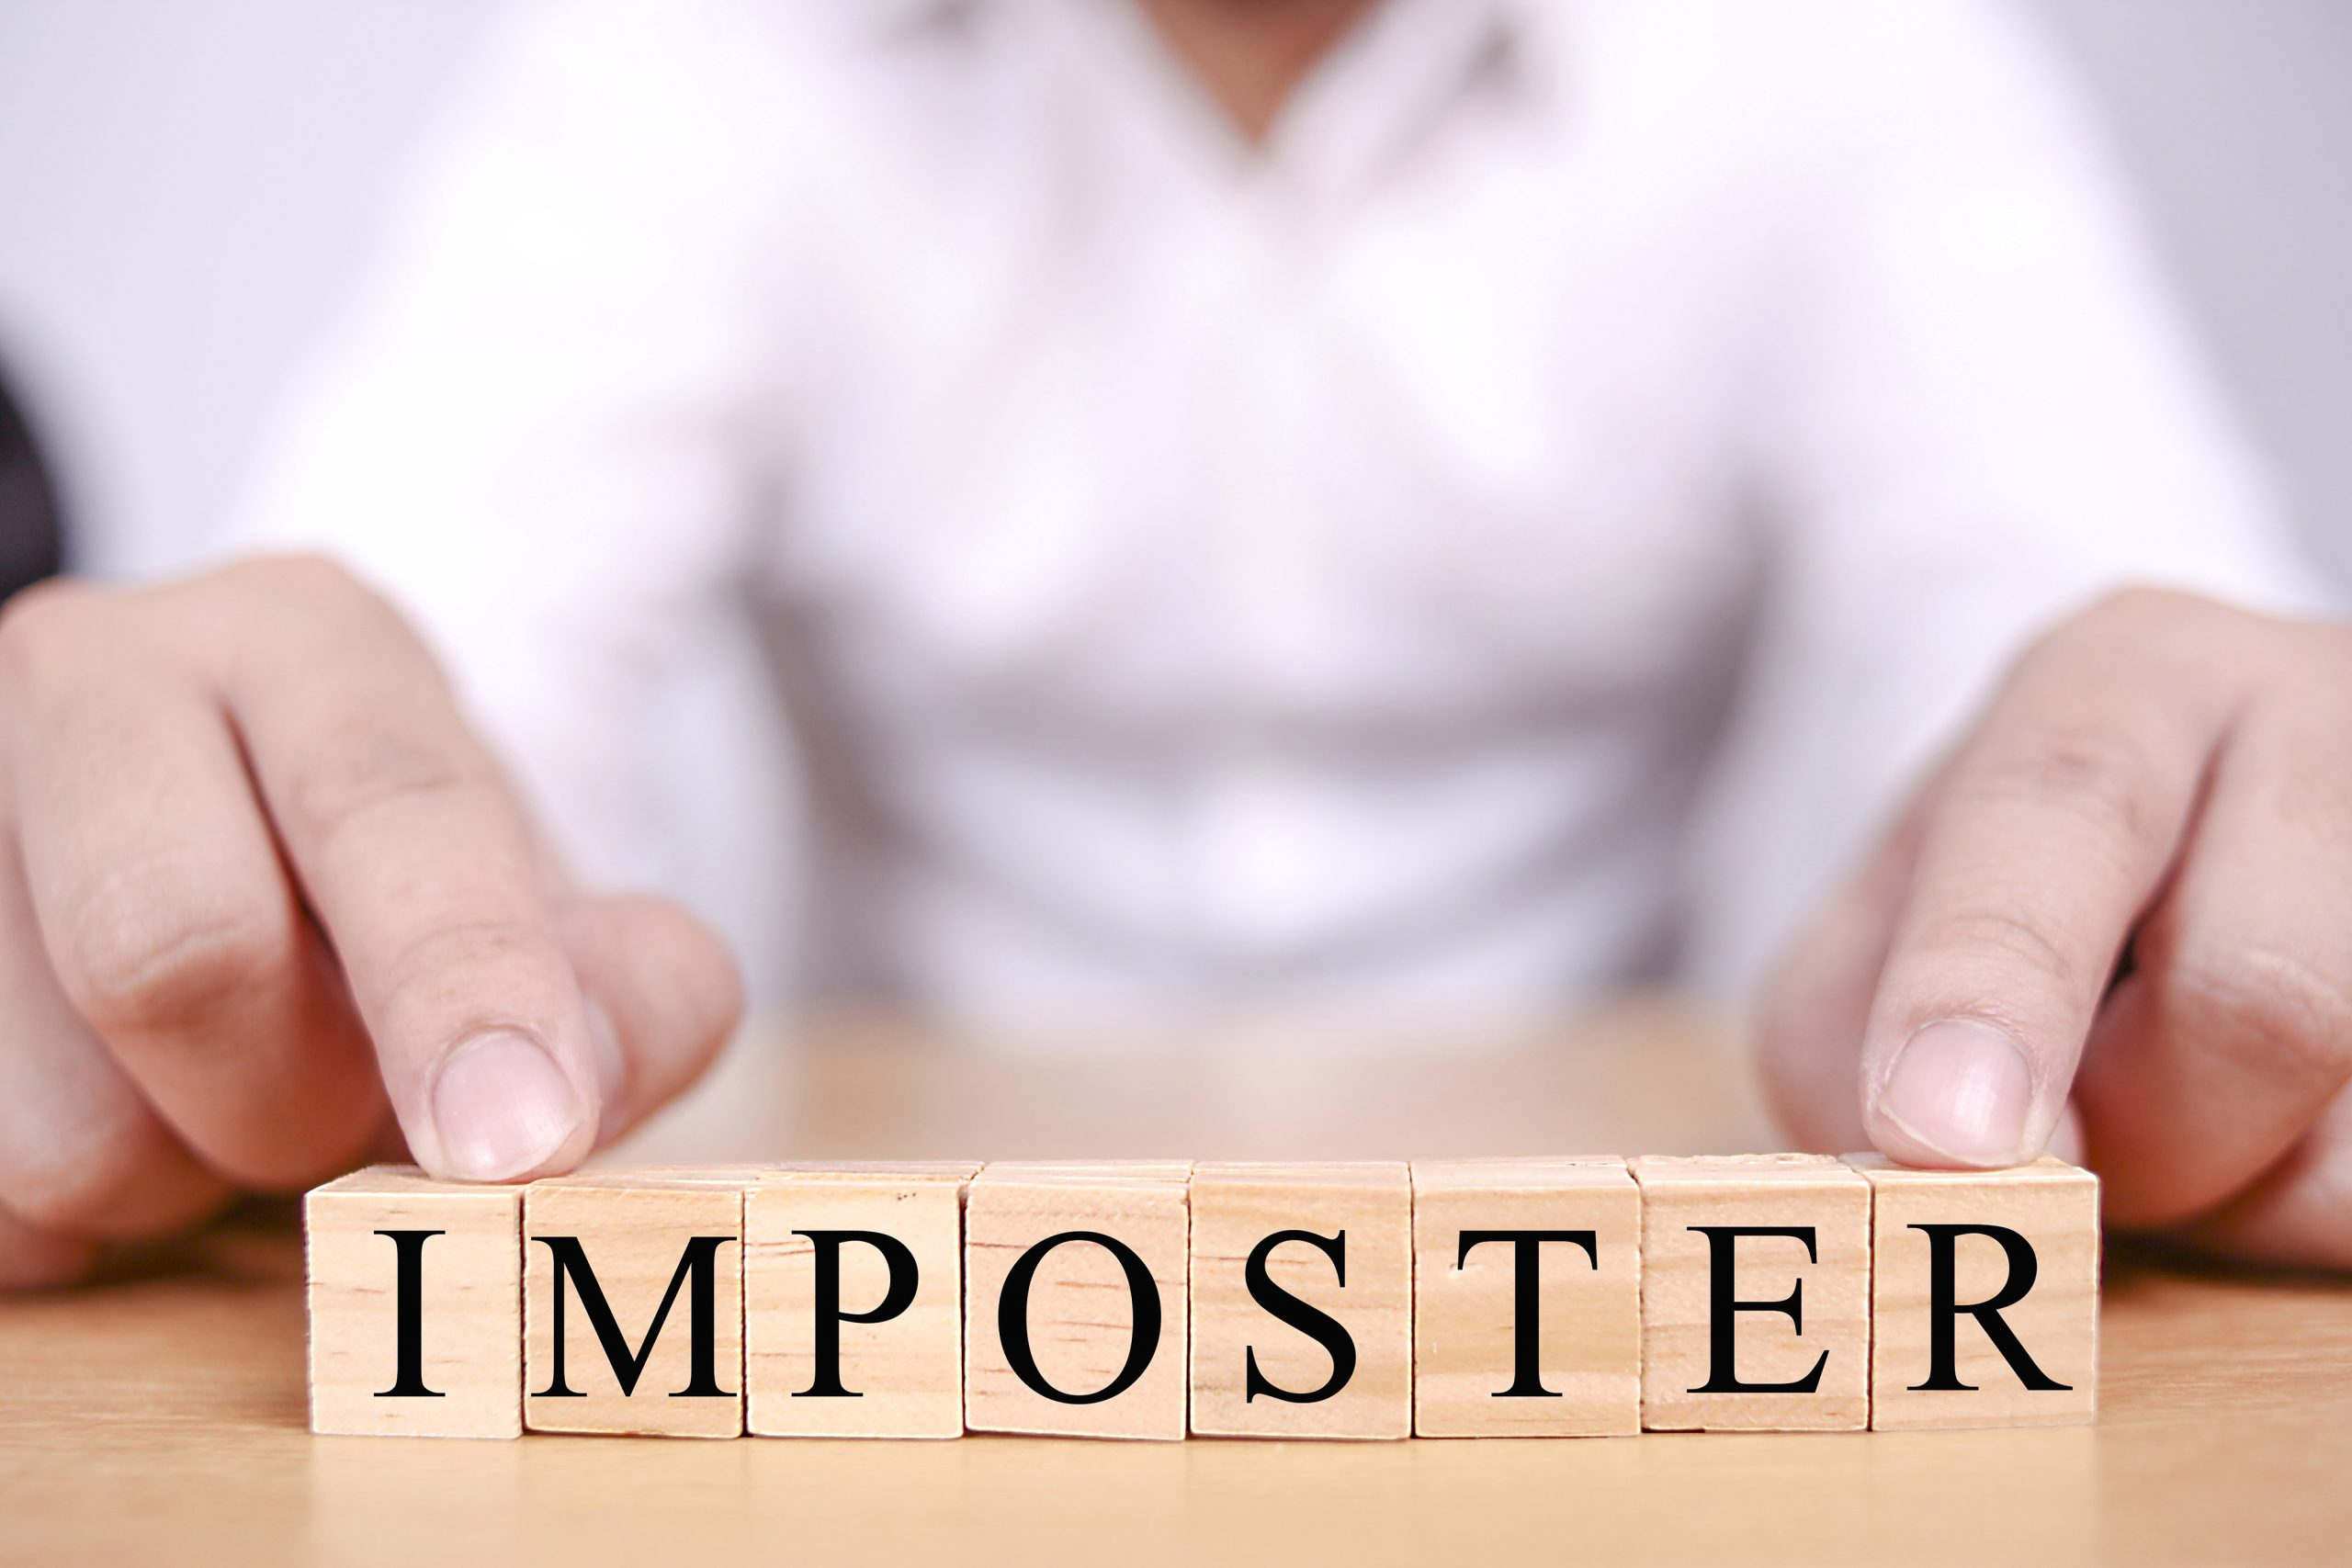 IMPOSTER spelled out in blocks